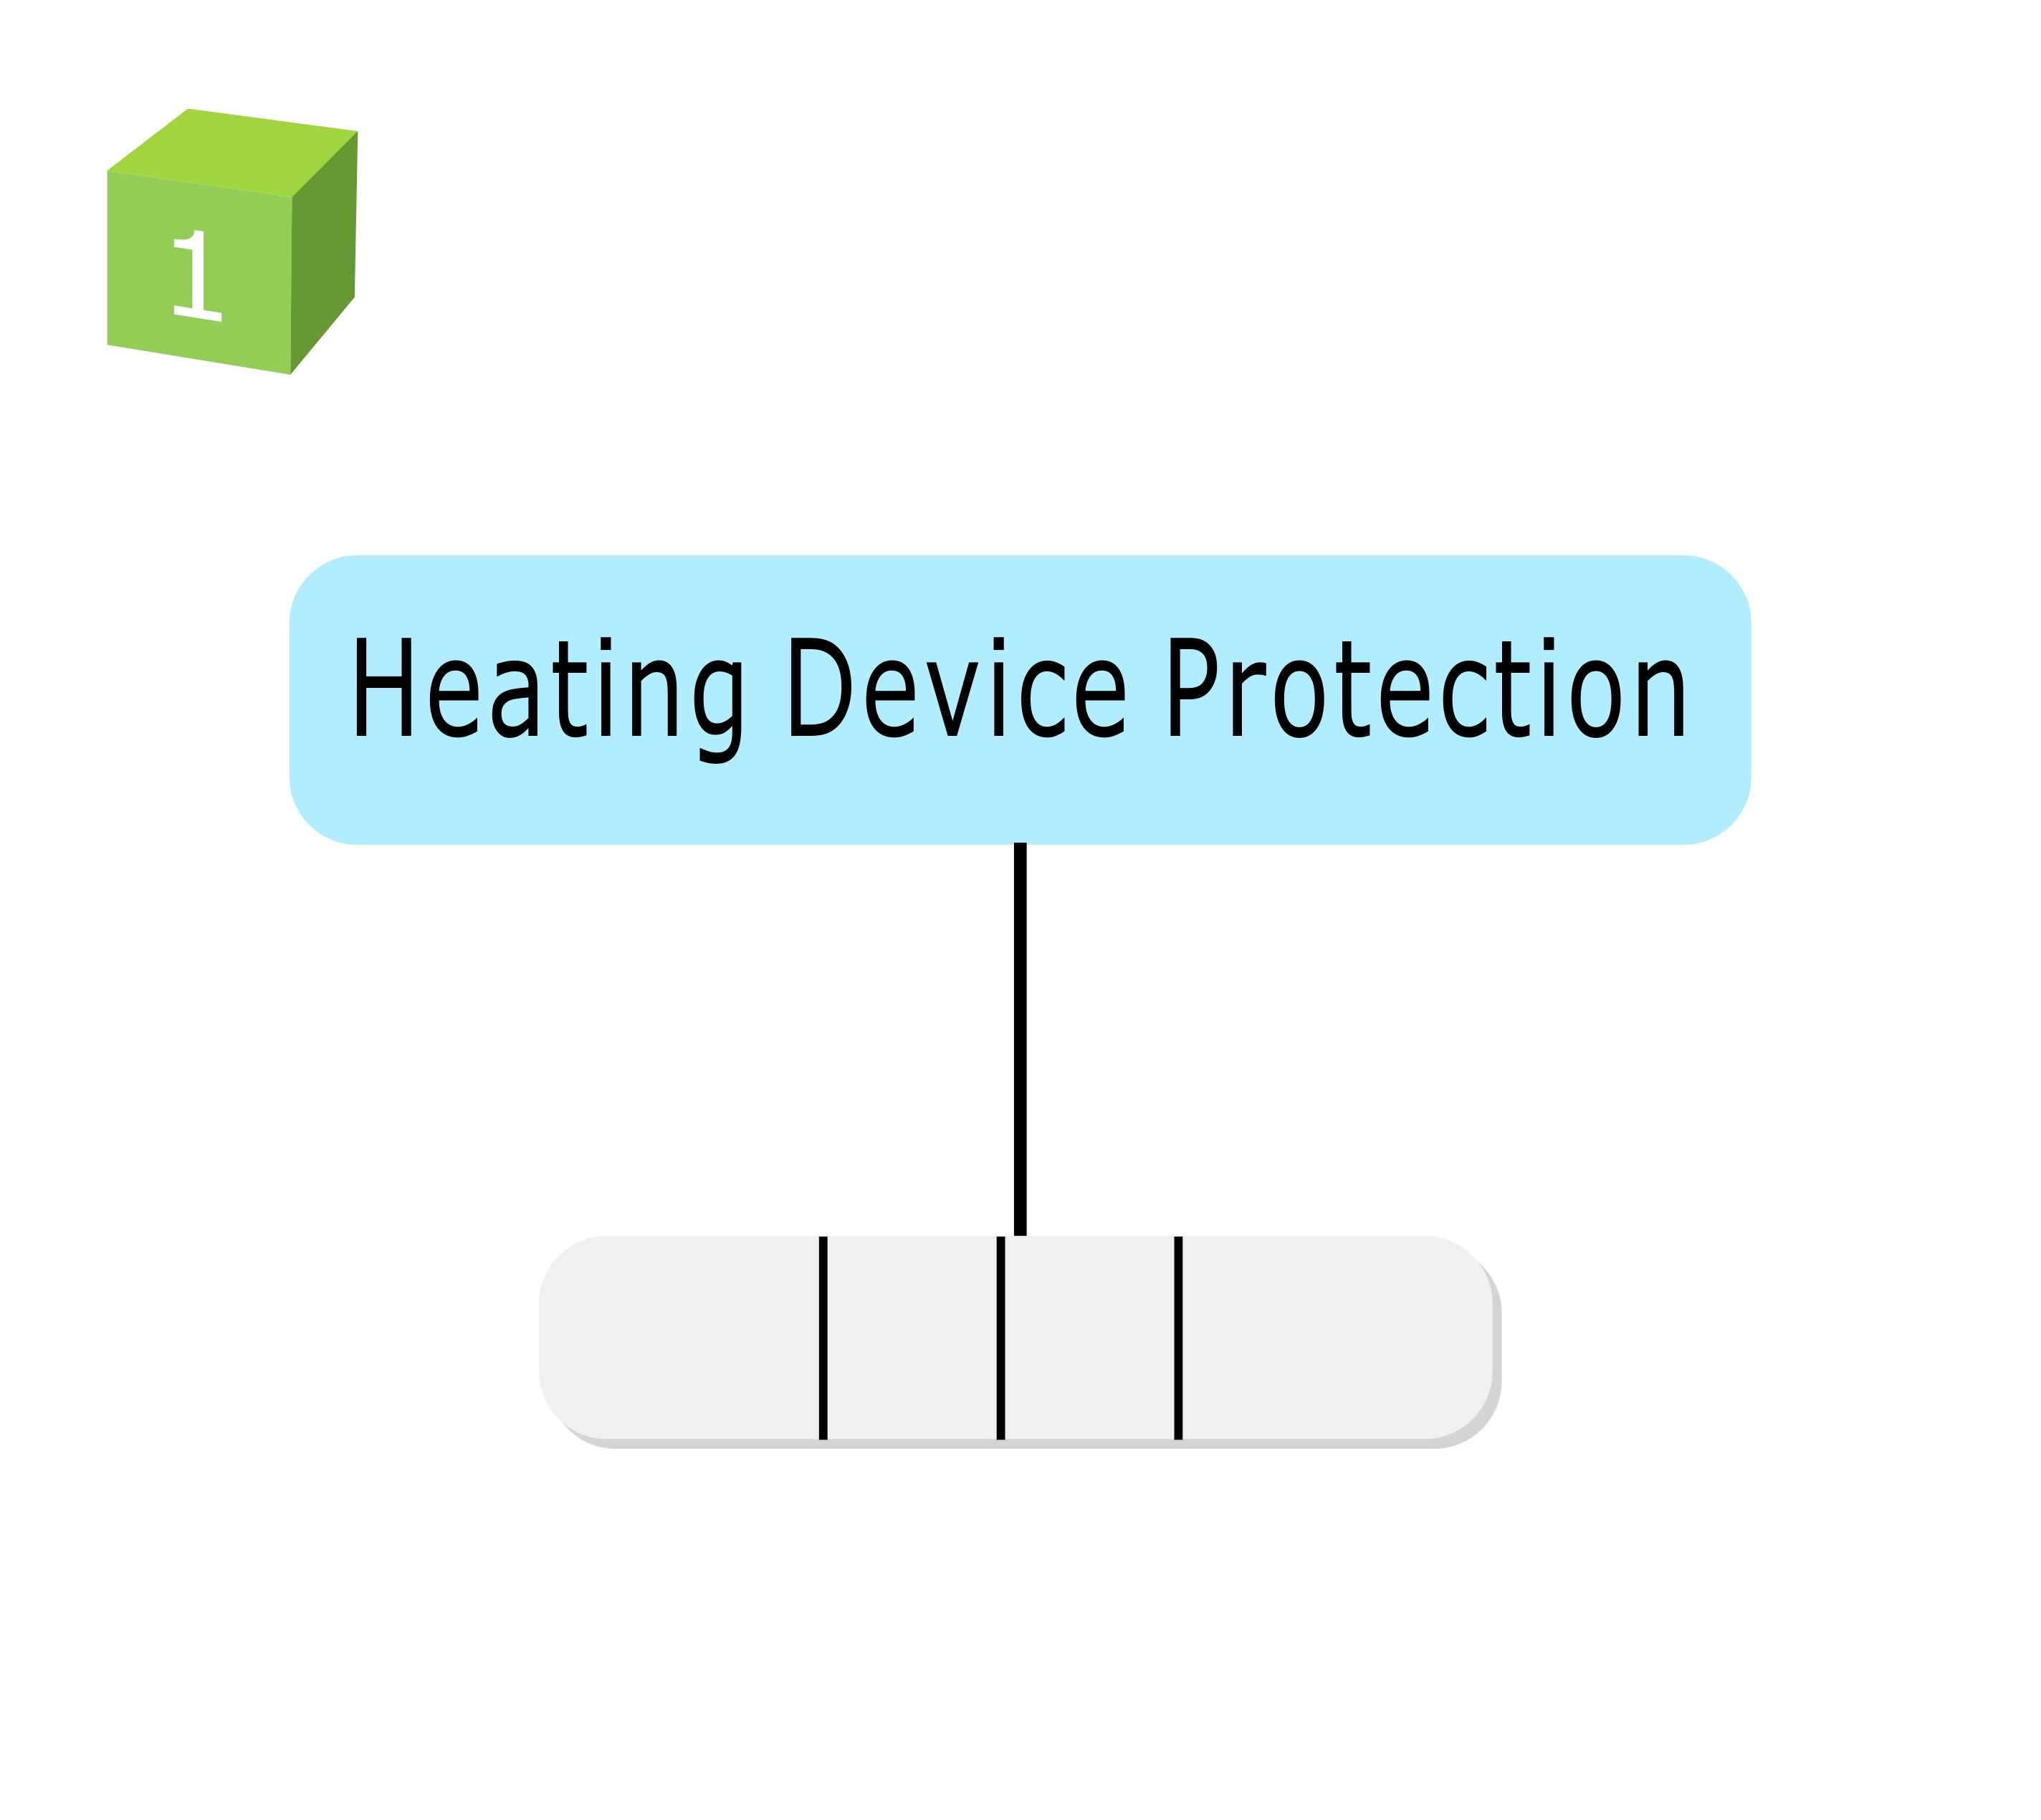 Thermal protection for electric heating:  TCO mounted on Heating device to prevent abnormal temperature rise of heating